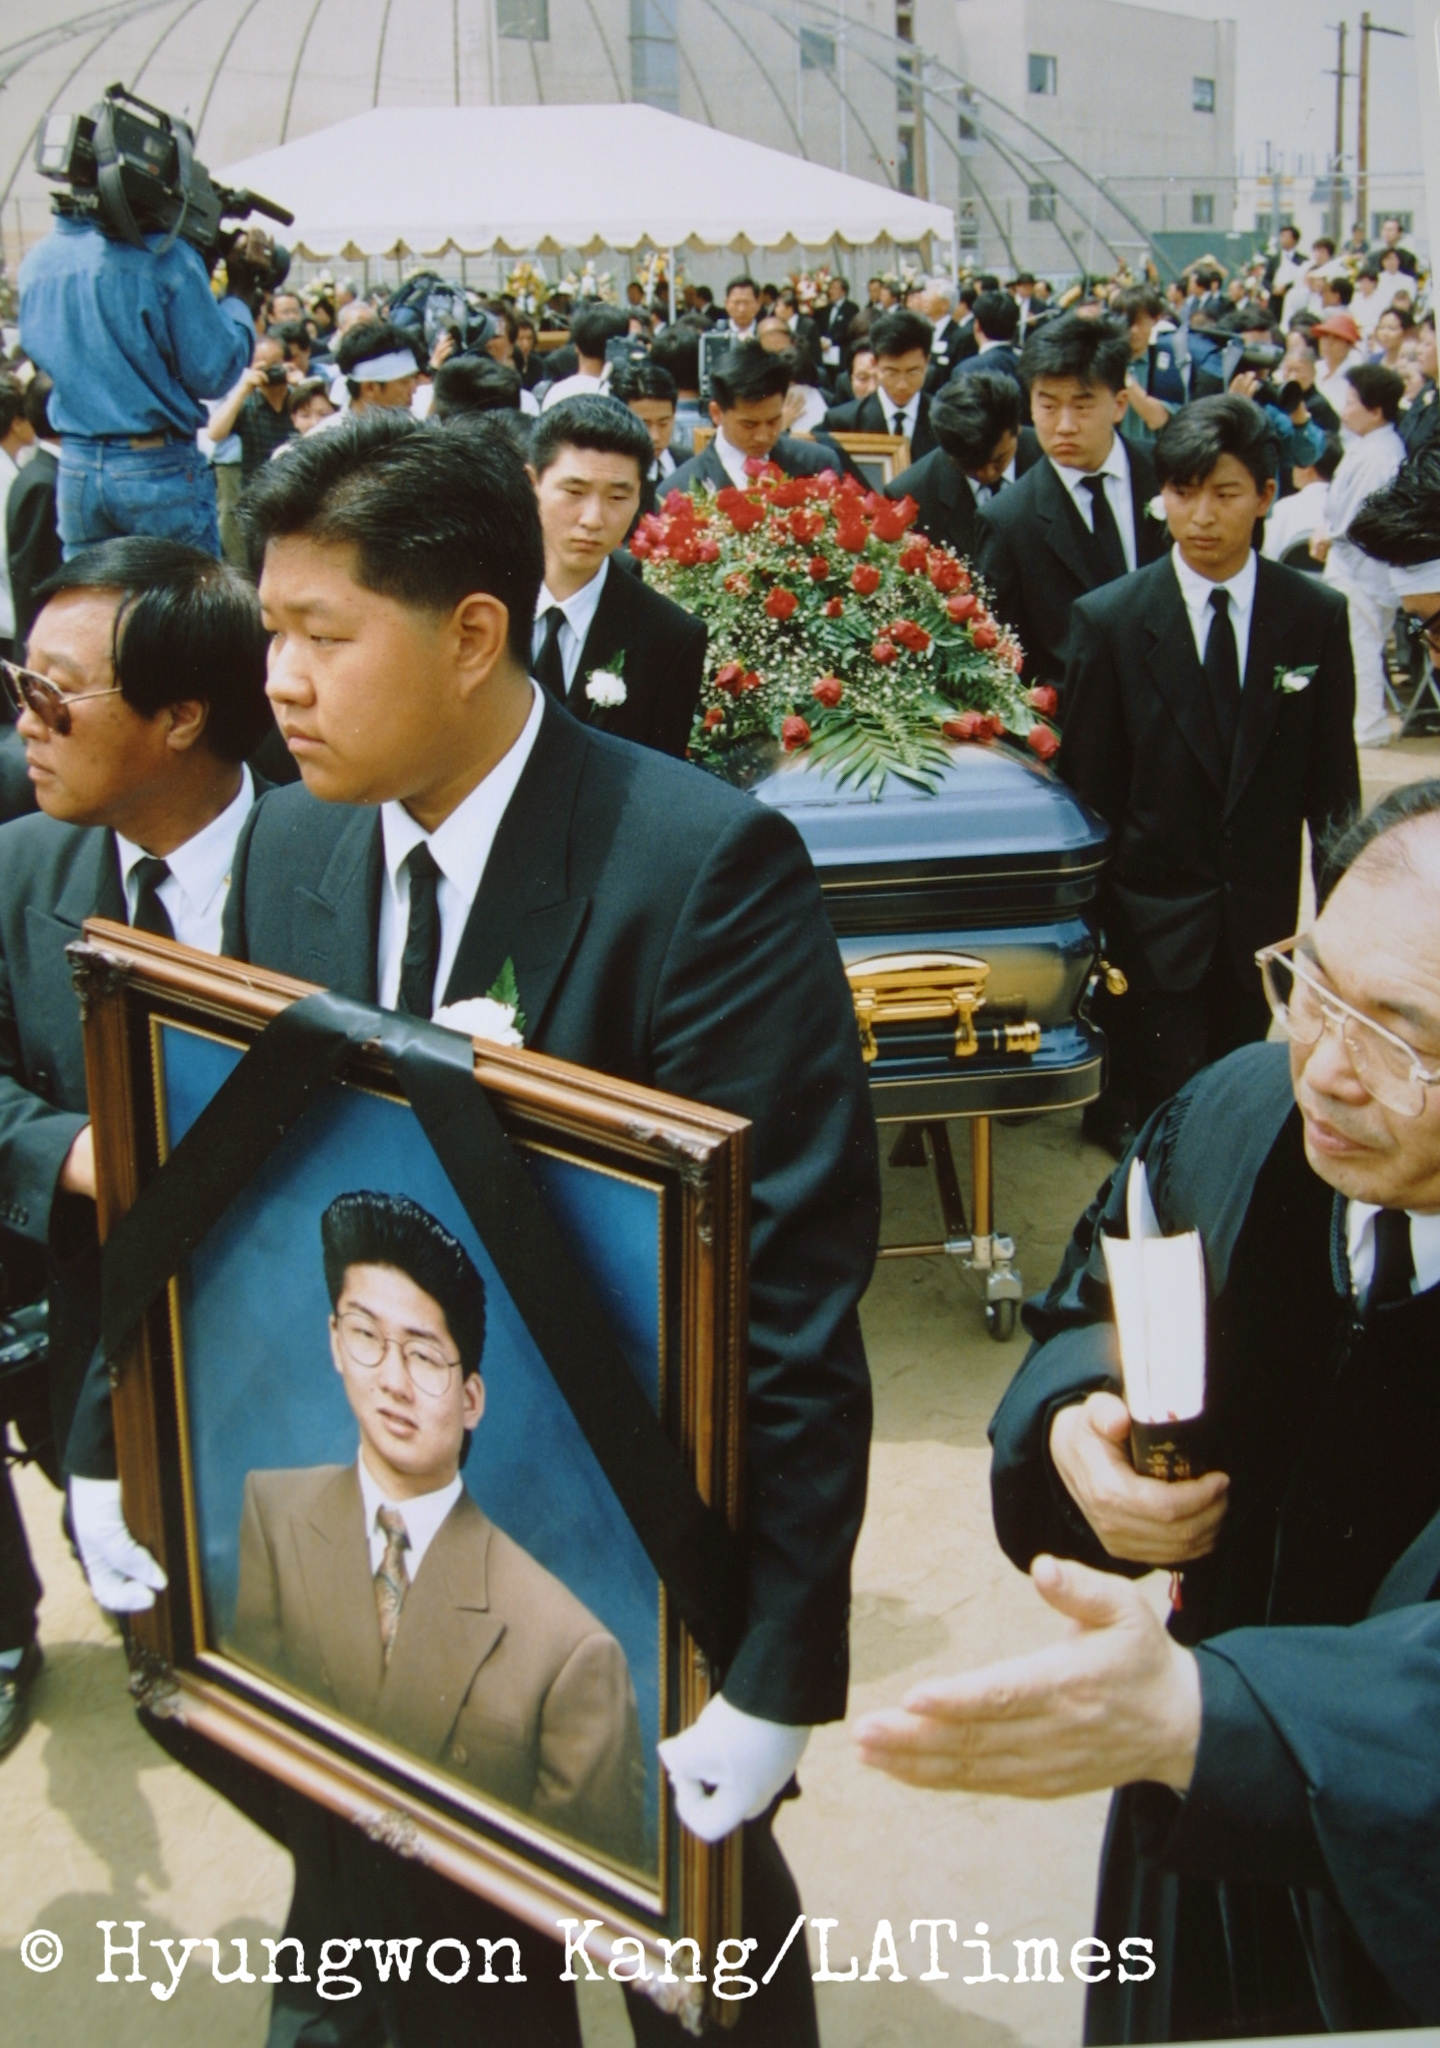 Eddie Lee laid to rest